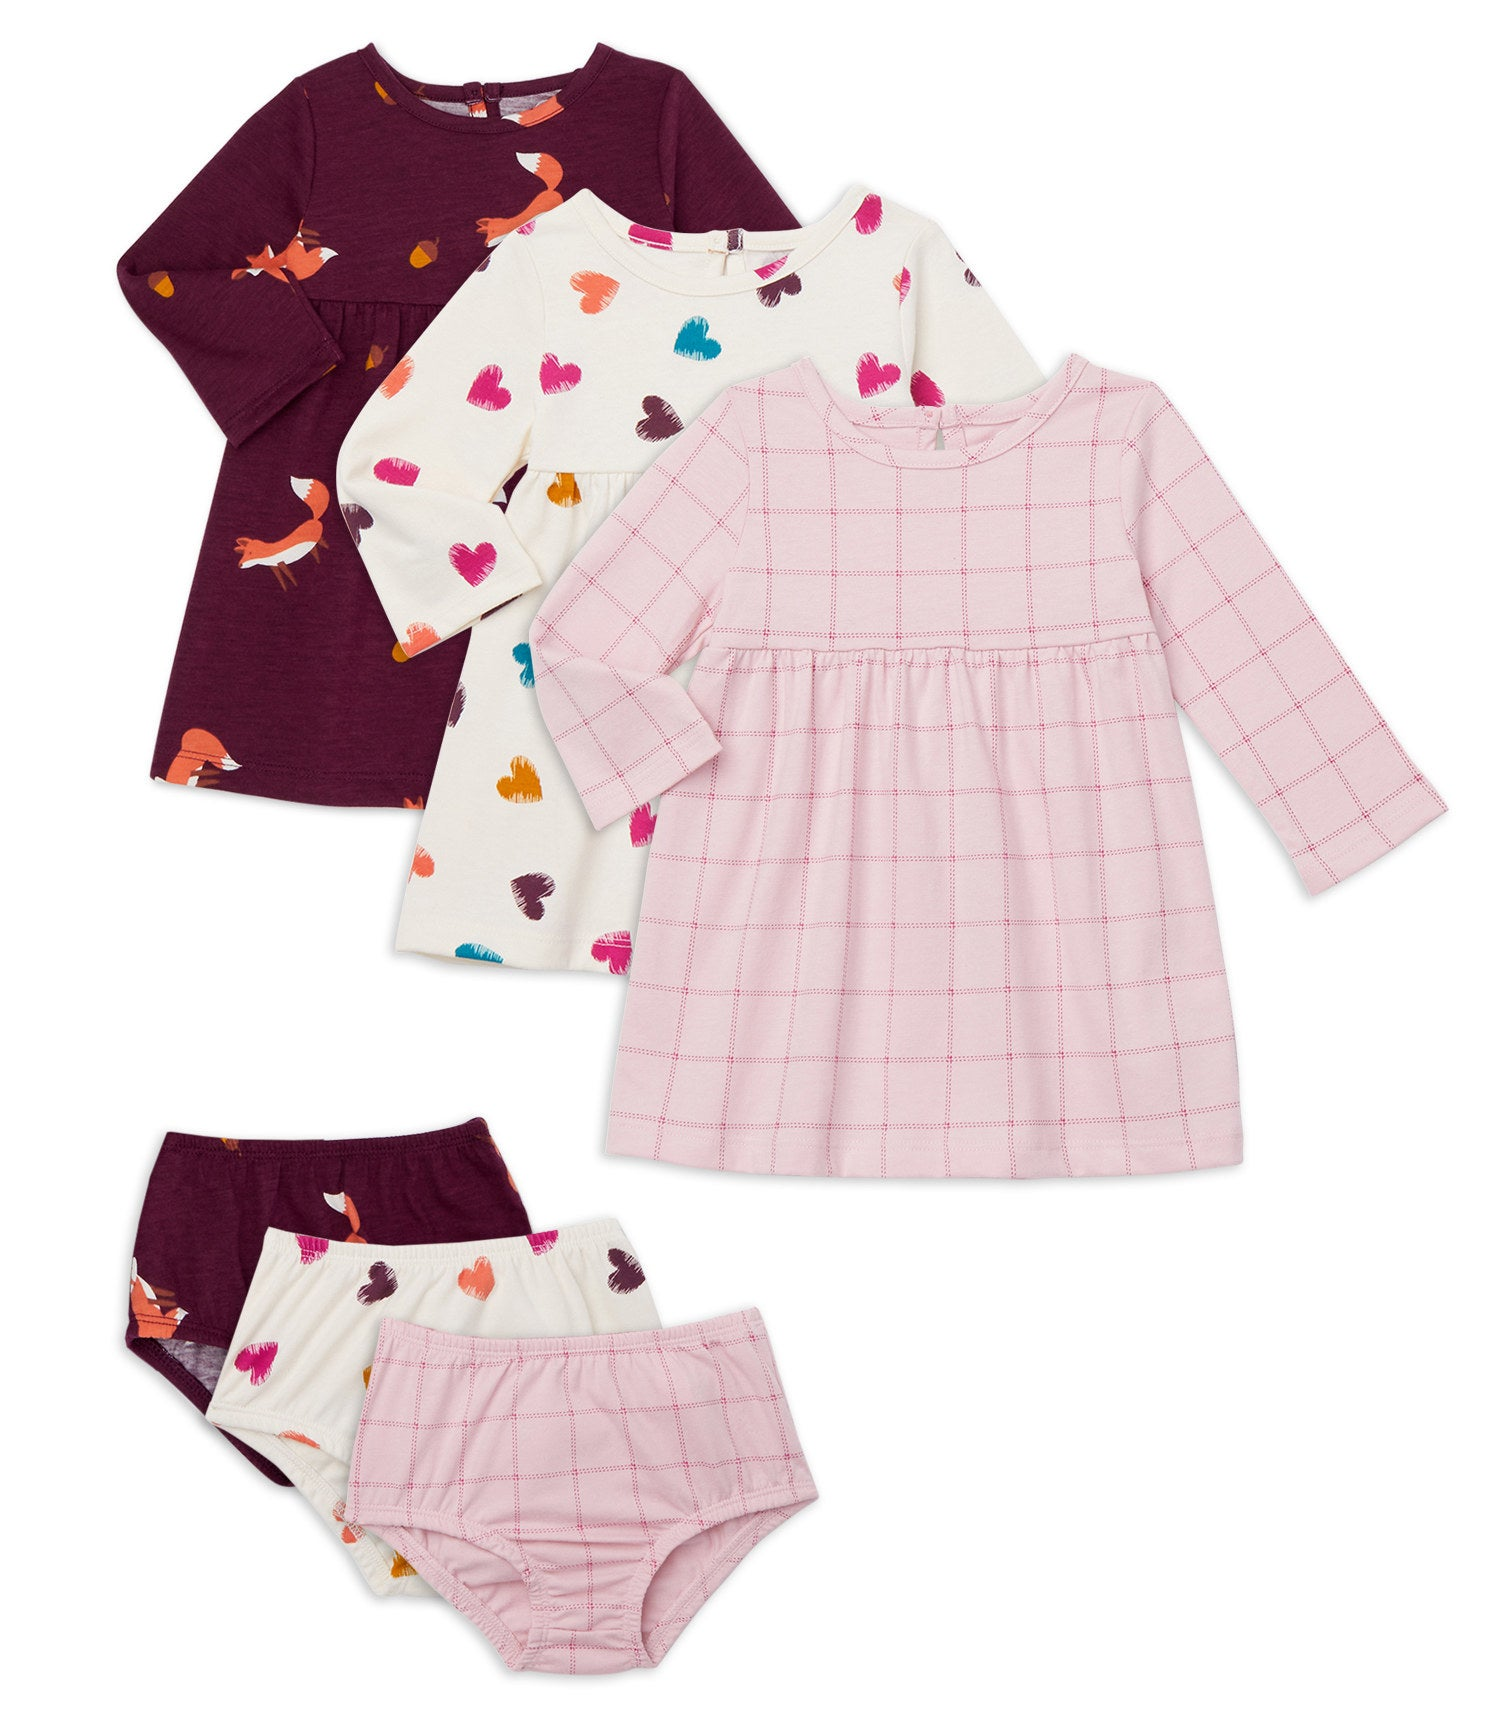 A set of three dresses and diaper covers in various patterns